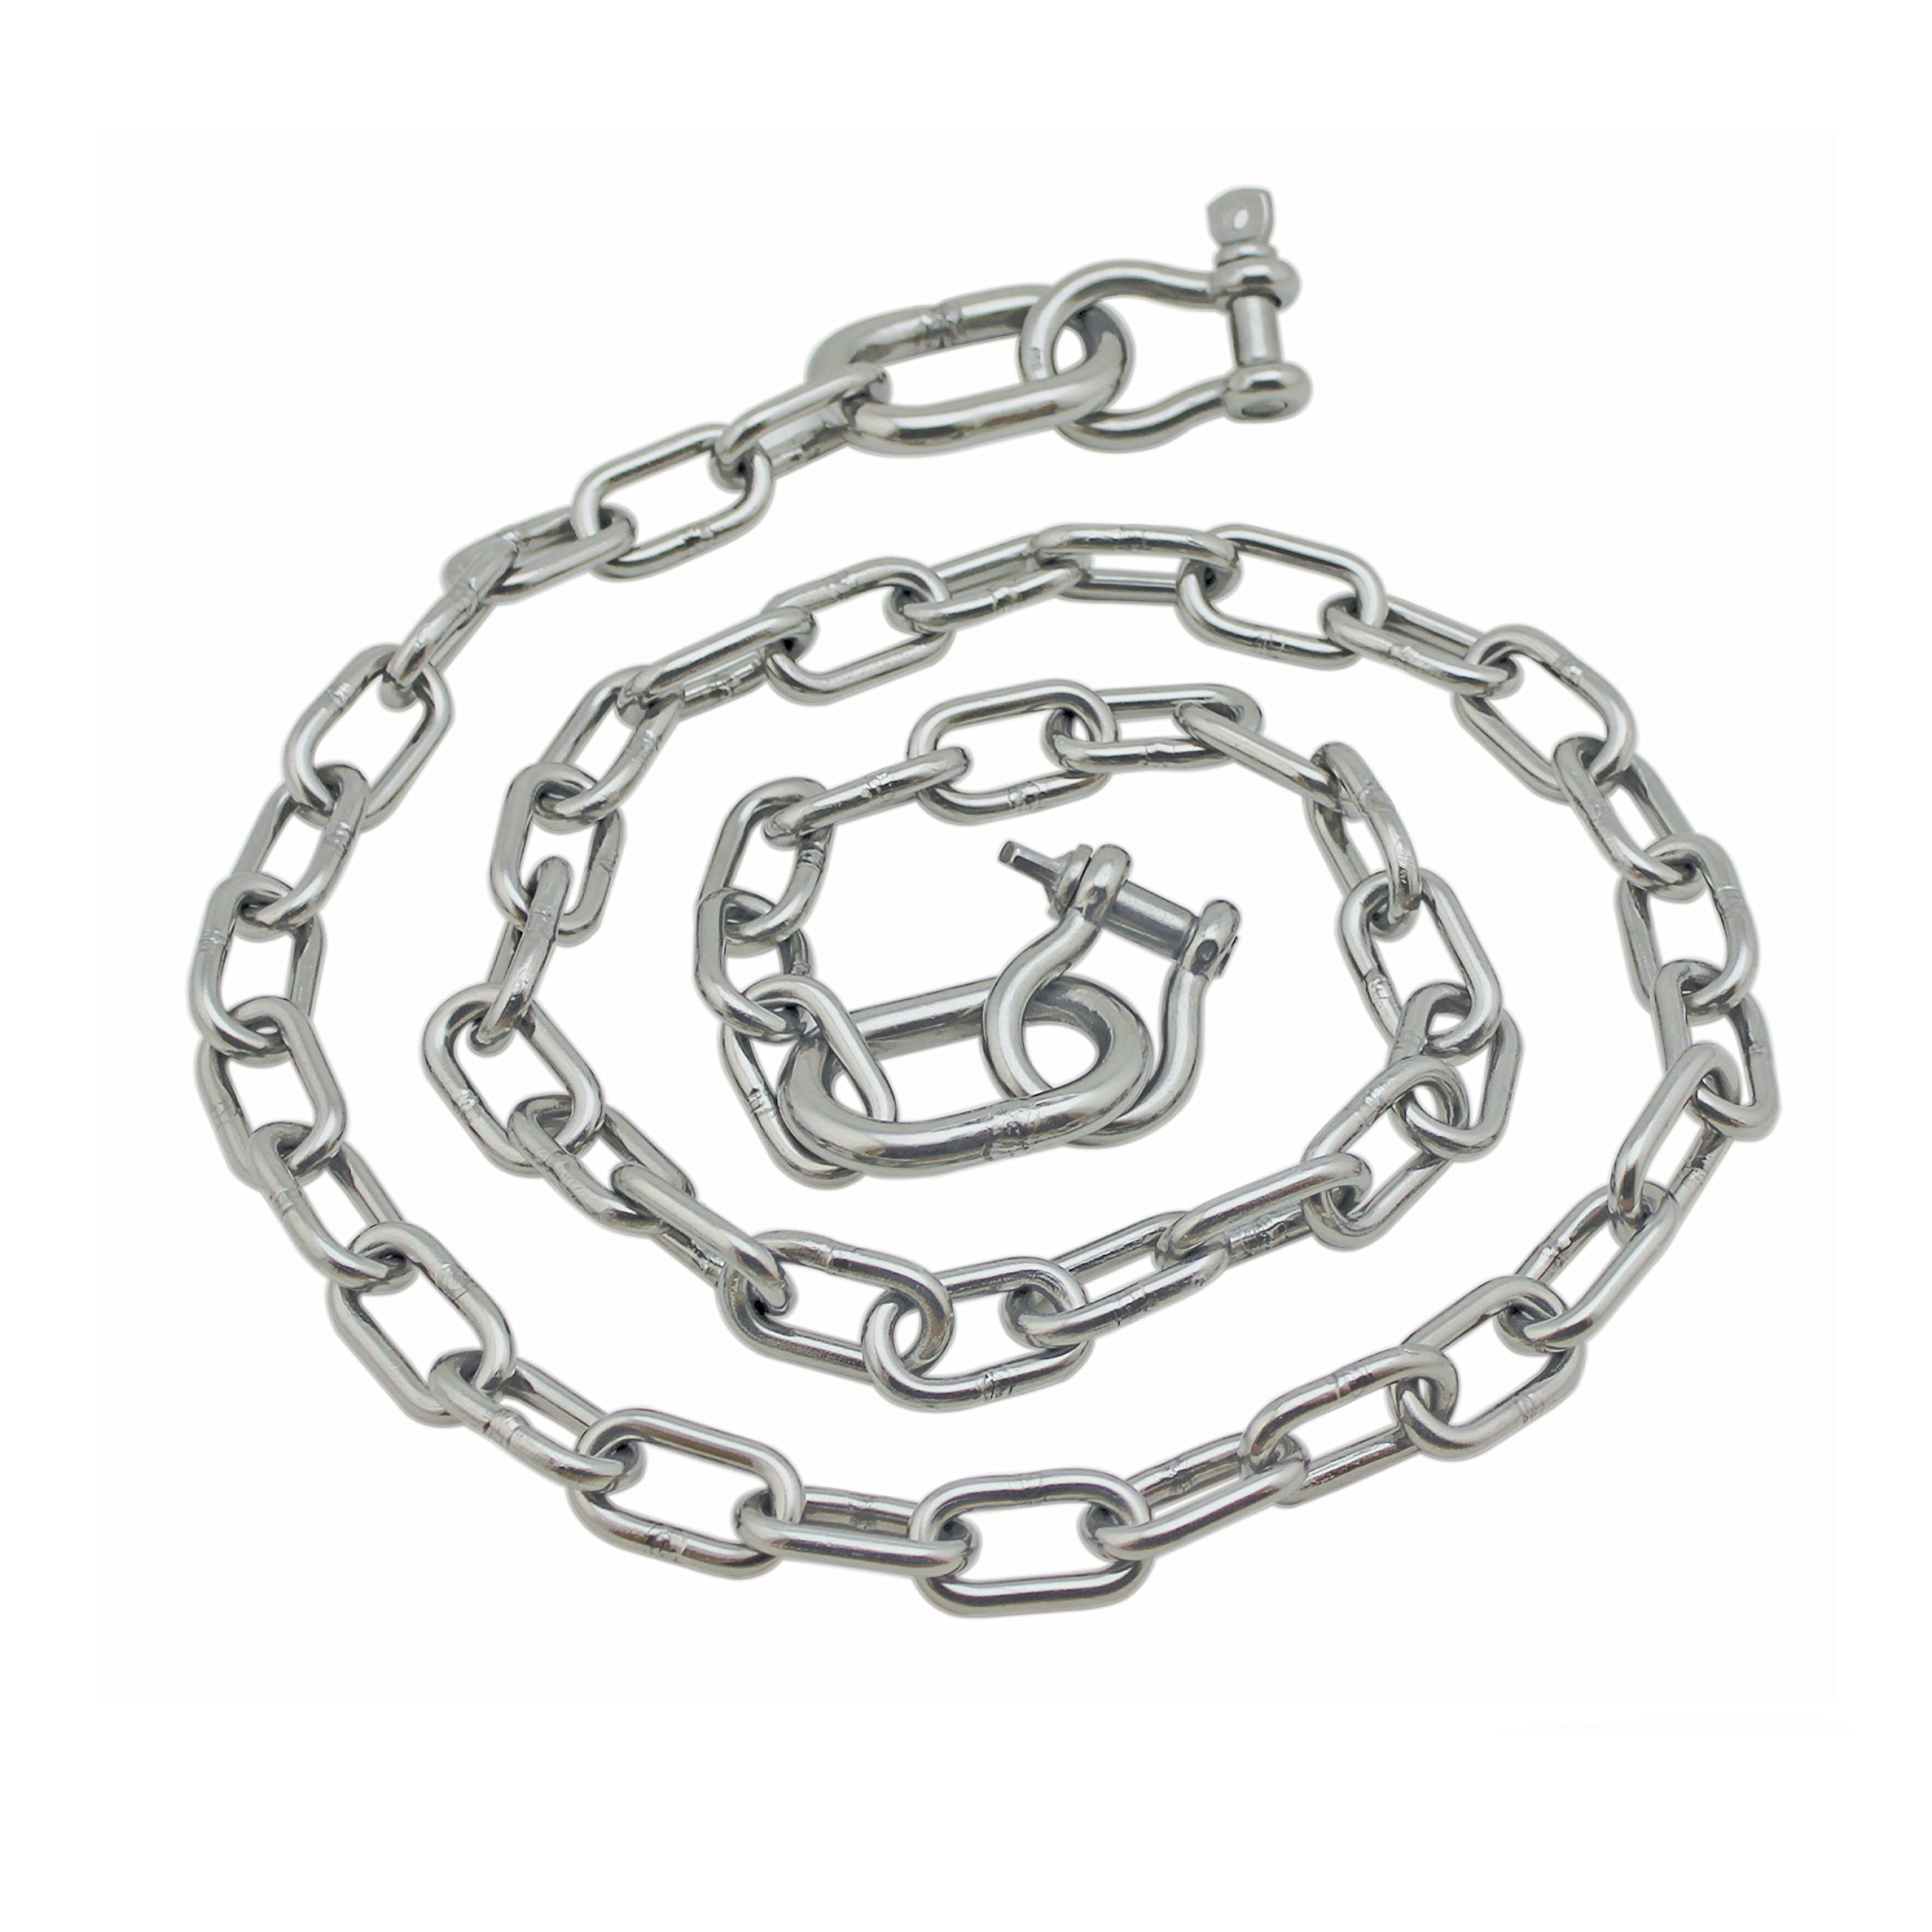 Extreme Max 3006.6581 BoatTector Anchor Chain - 5/16'' x 5' Stainless Steel with 3/8'' Shackles